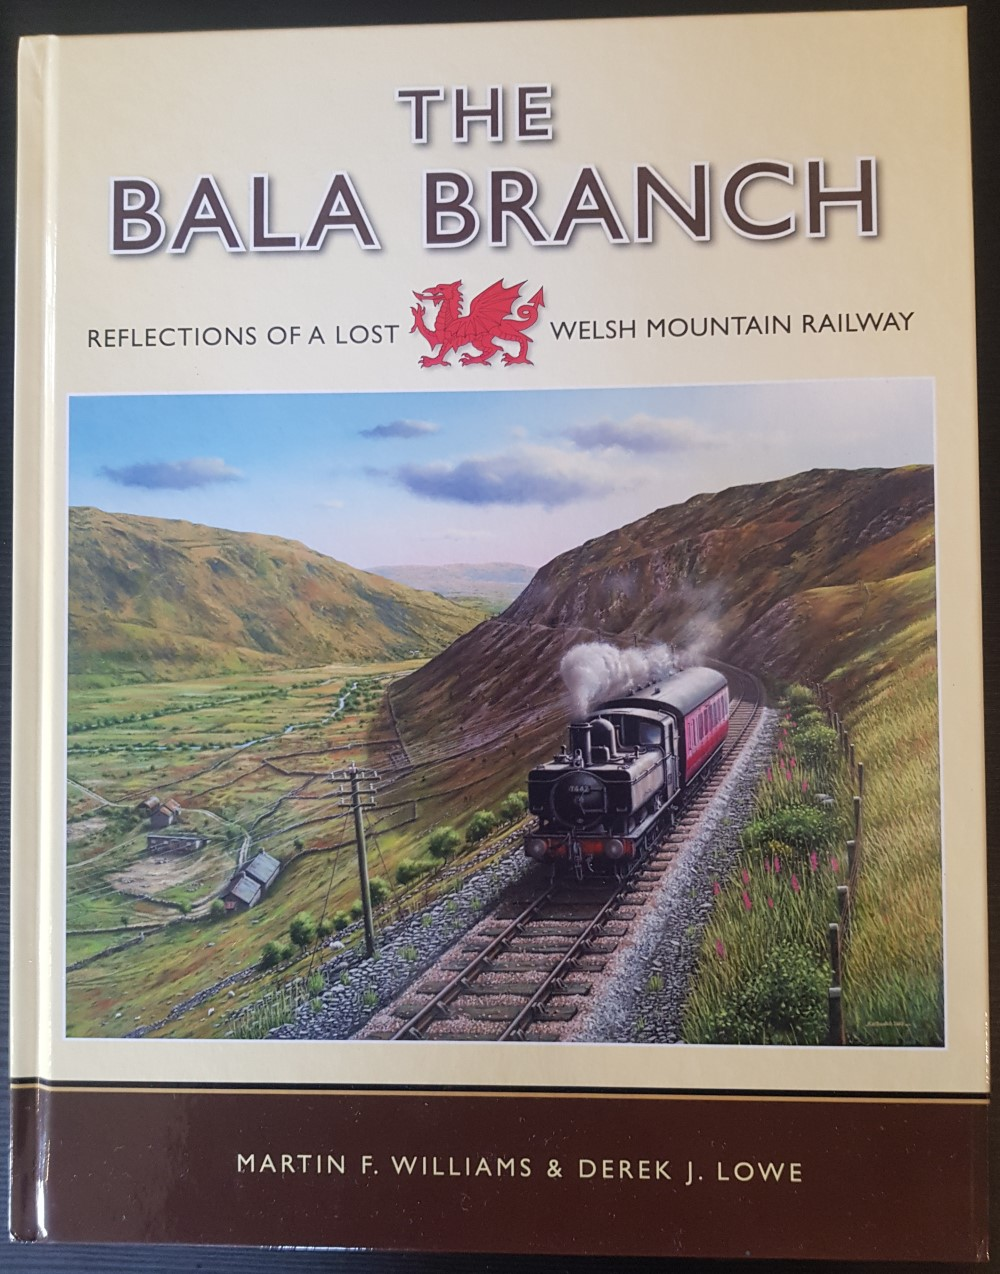 The Bala Branch – Martin F Williams & Derek J Lowe